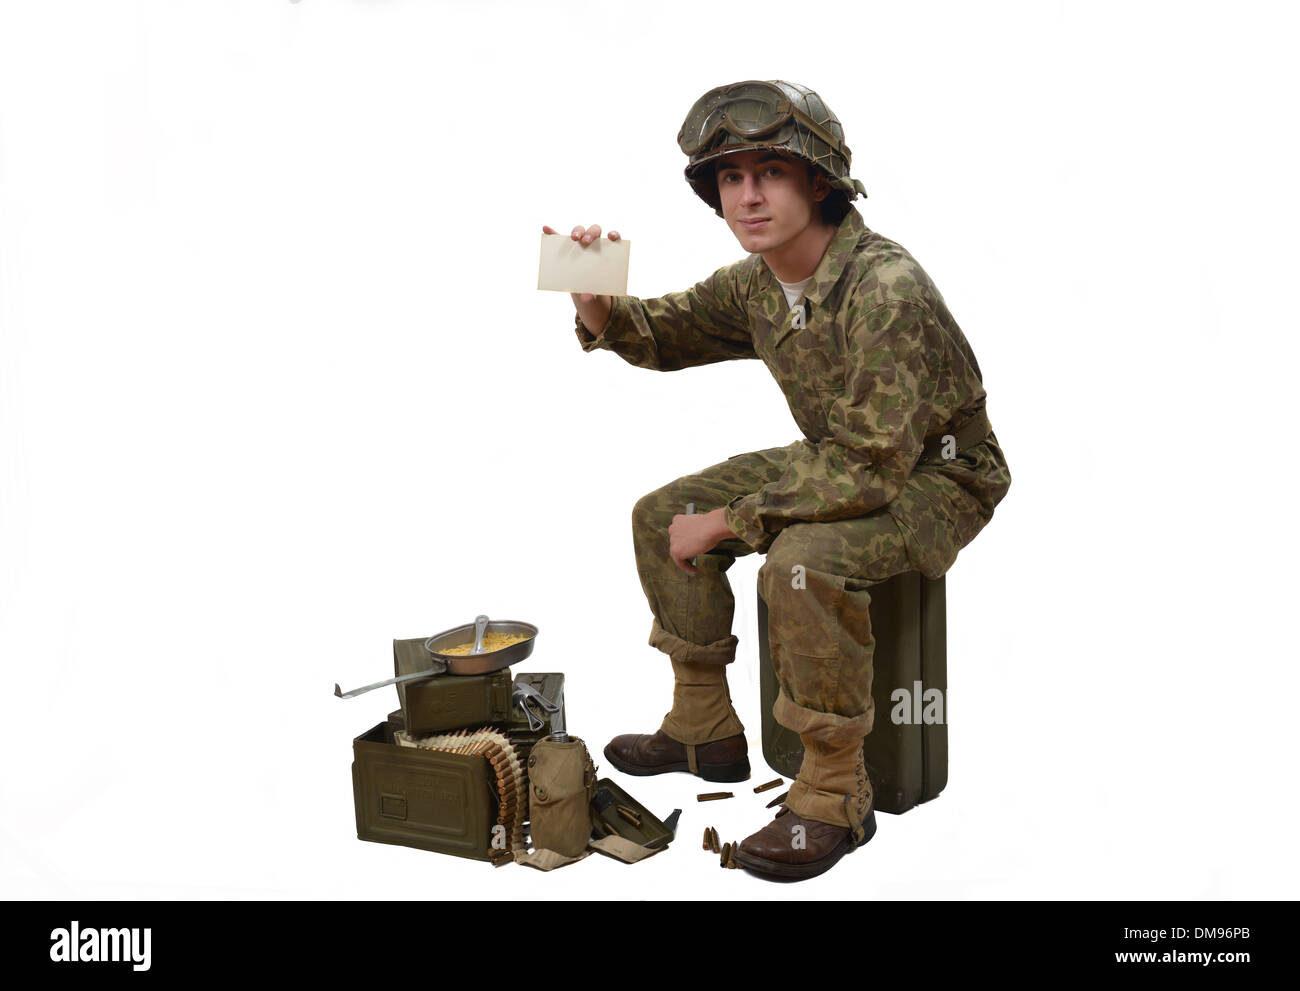 young American soldier in camouflage uniform shows a photograph - Stock Image